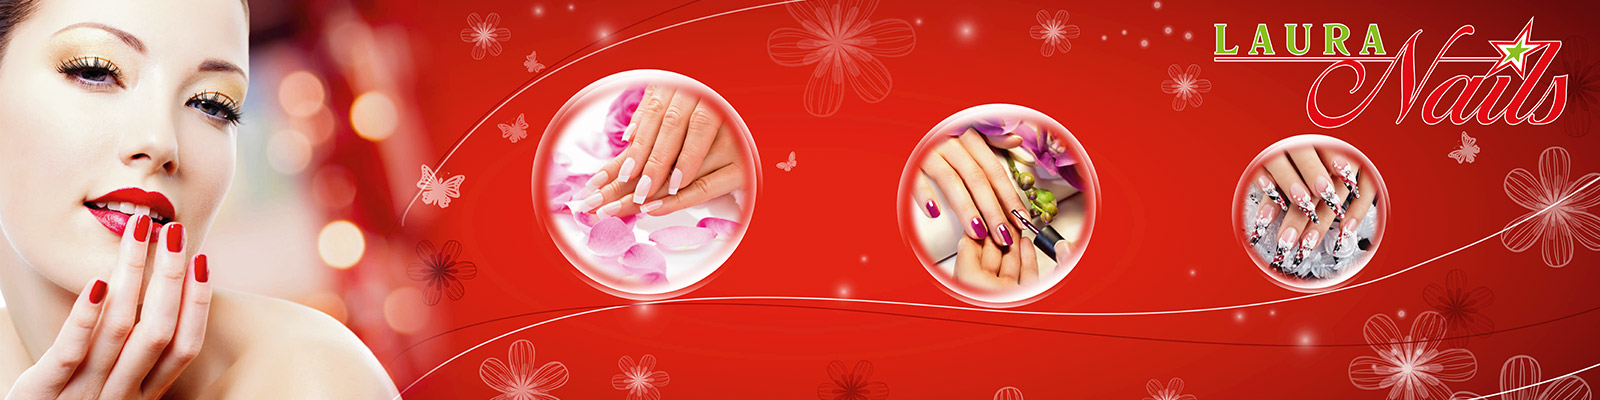 Aktion Nagelstudio